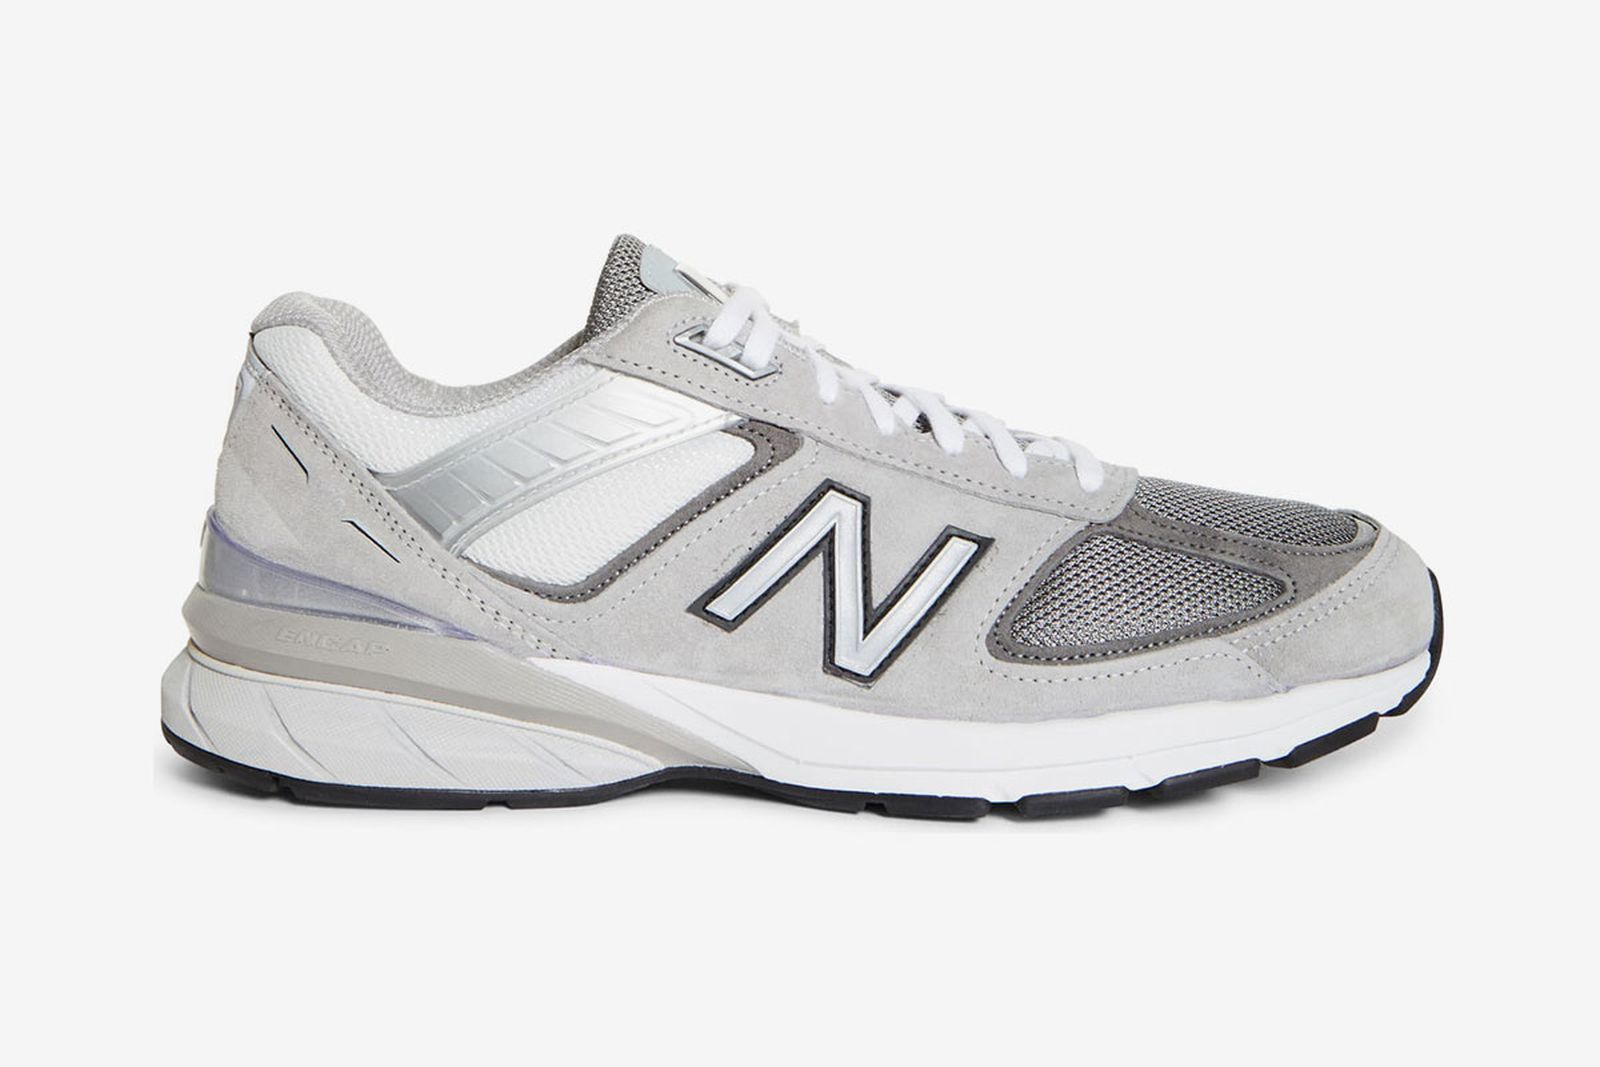 beams-new-balance-990v5-release-date-price-02